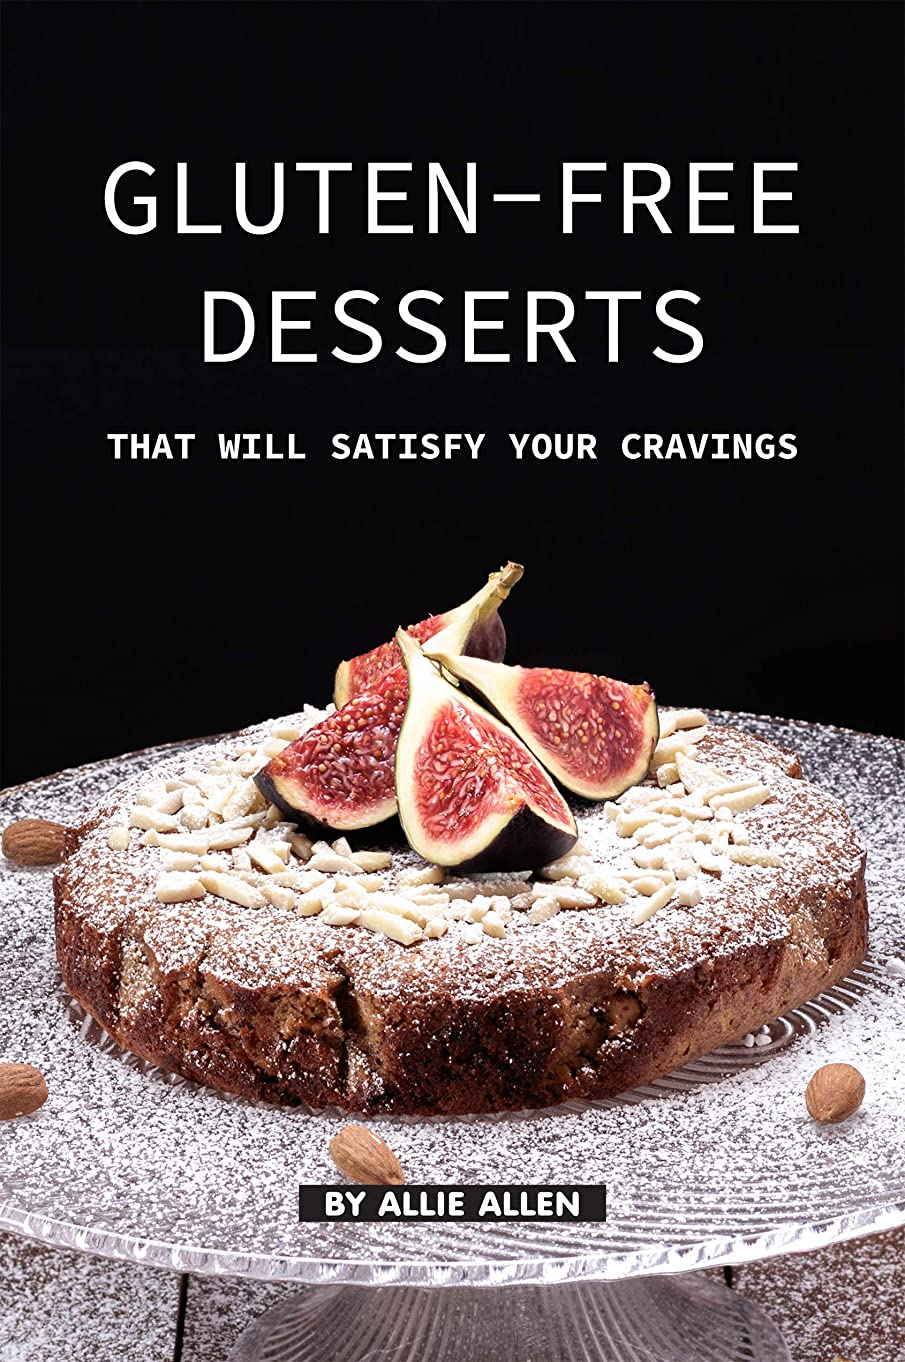 Gluten-Free Desserts That Will Satisfy Your Cravings: The Gluten-Free Cookbook That You Should get Right Now (English Edition)